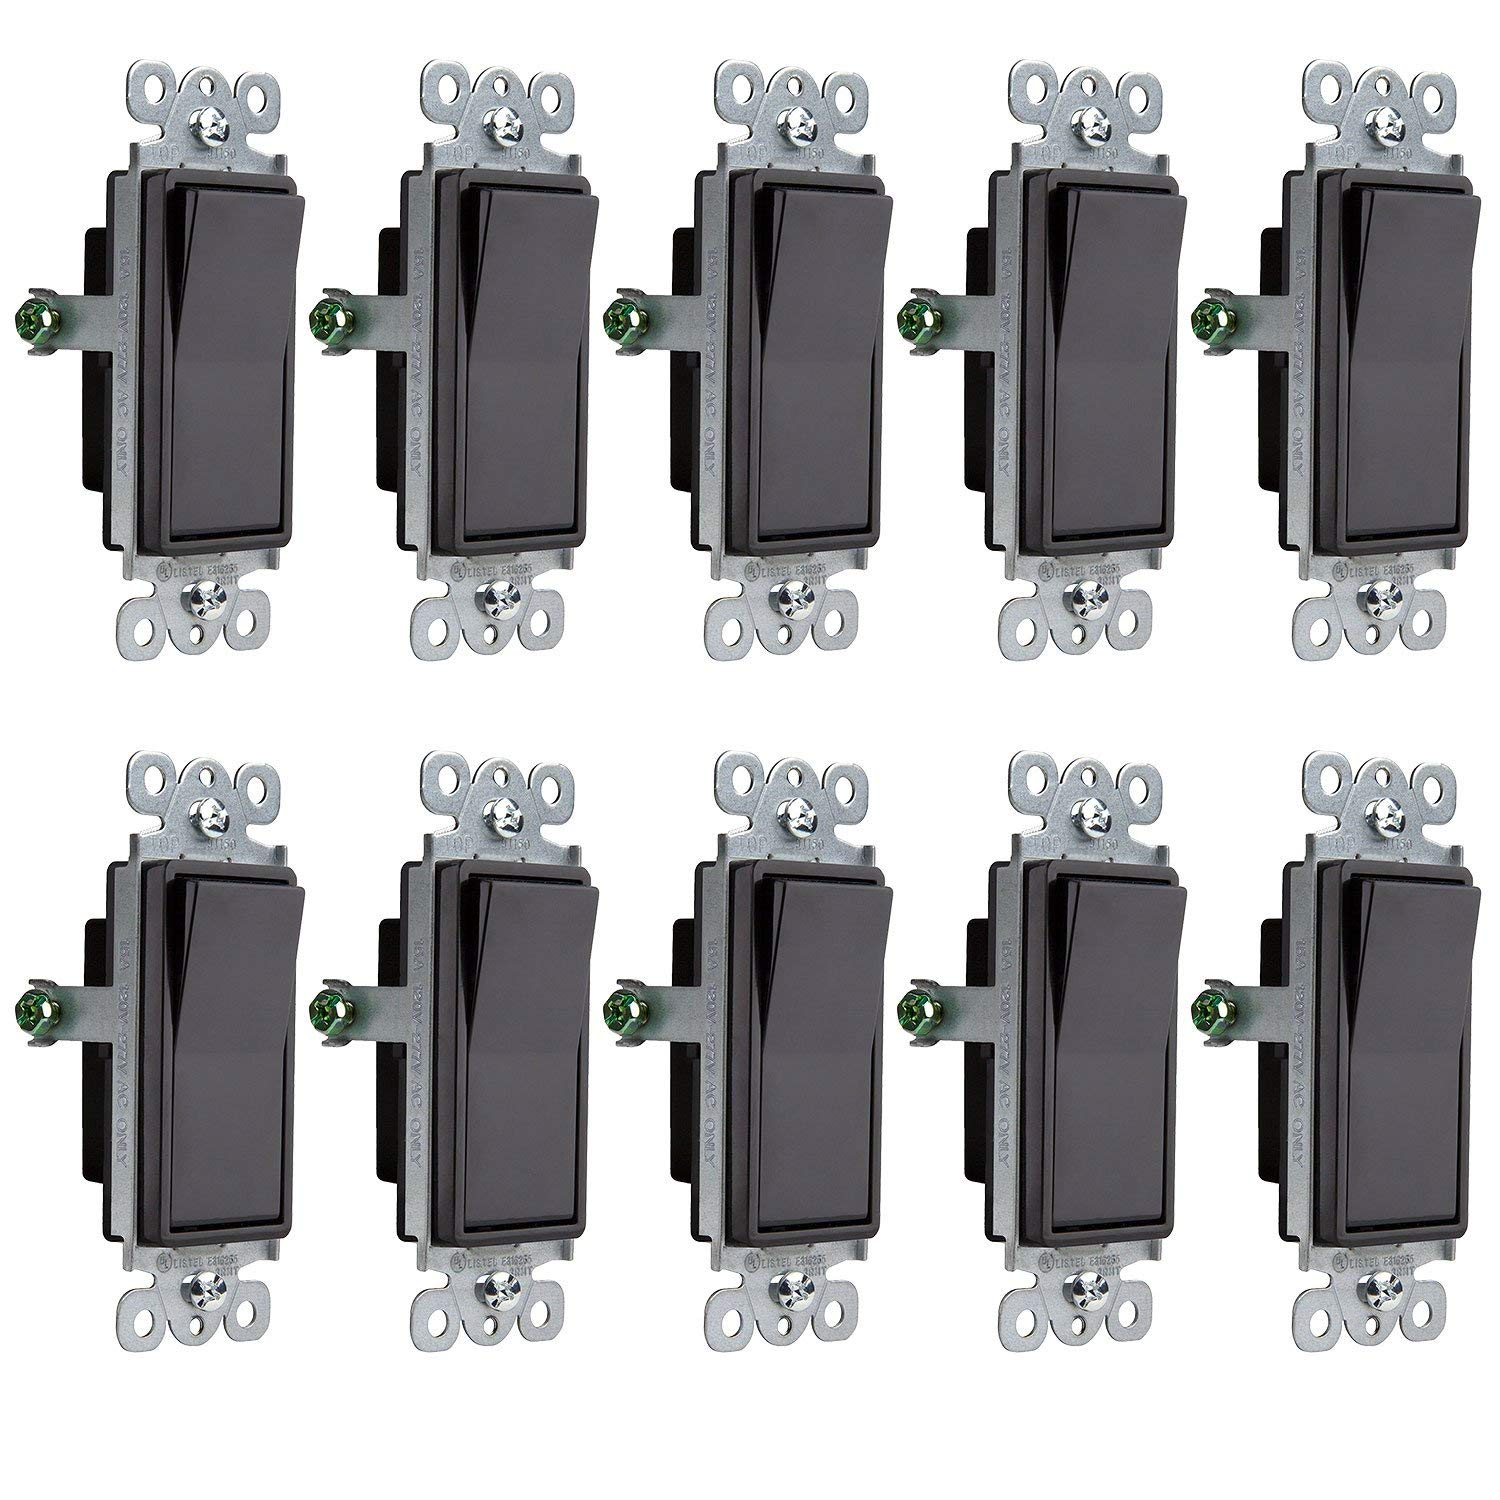 Enerlites Black Rocker Light Switch 91150-BK | Decorator Style, On/Off Paddle Switch, 15 Amp, 120V/277V, AC, Single Pole, 3 Wire, Grounding Screw, Residential and Commercial Grade, UL Listed | 10 Pack